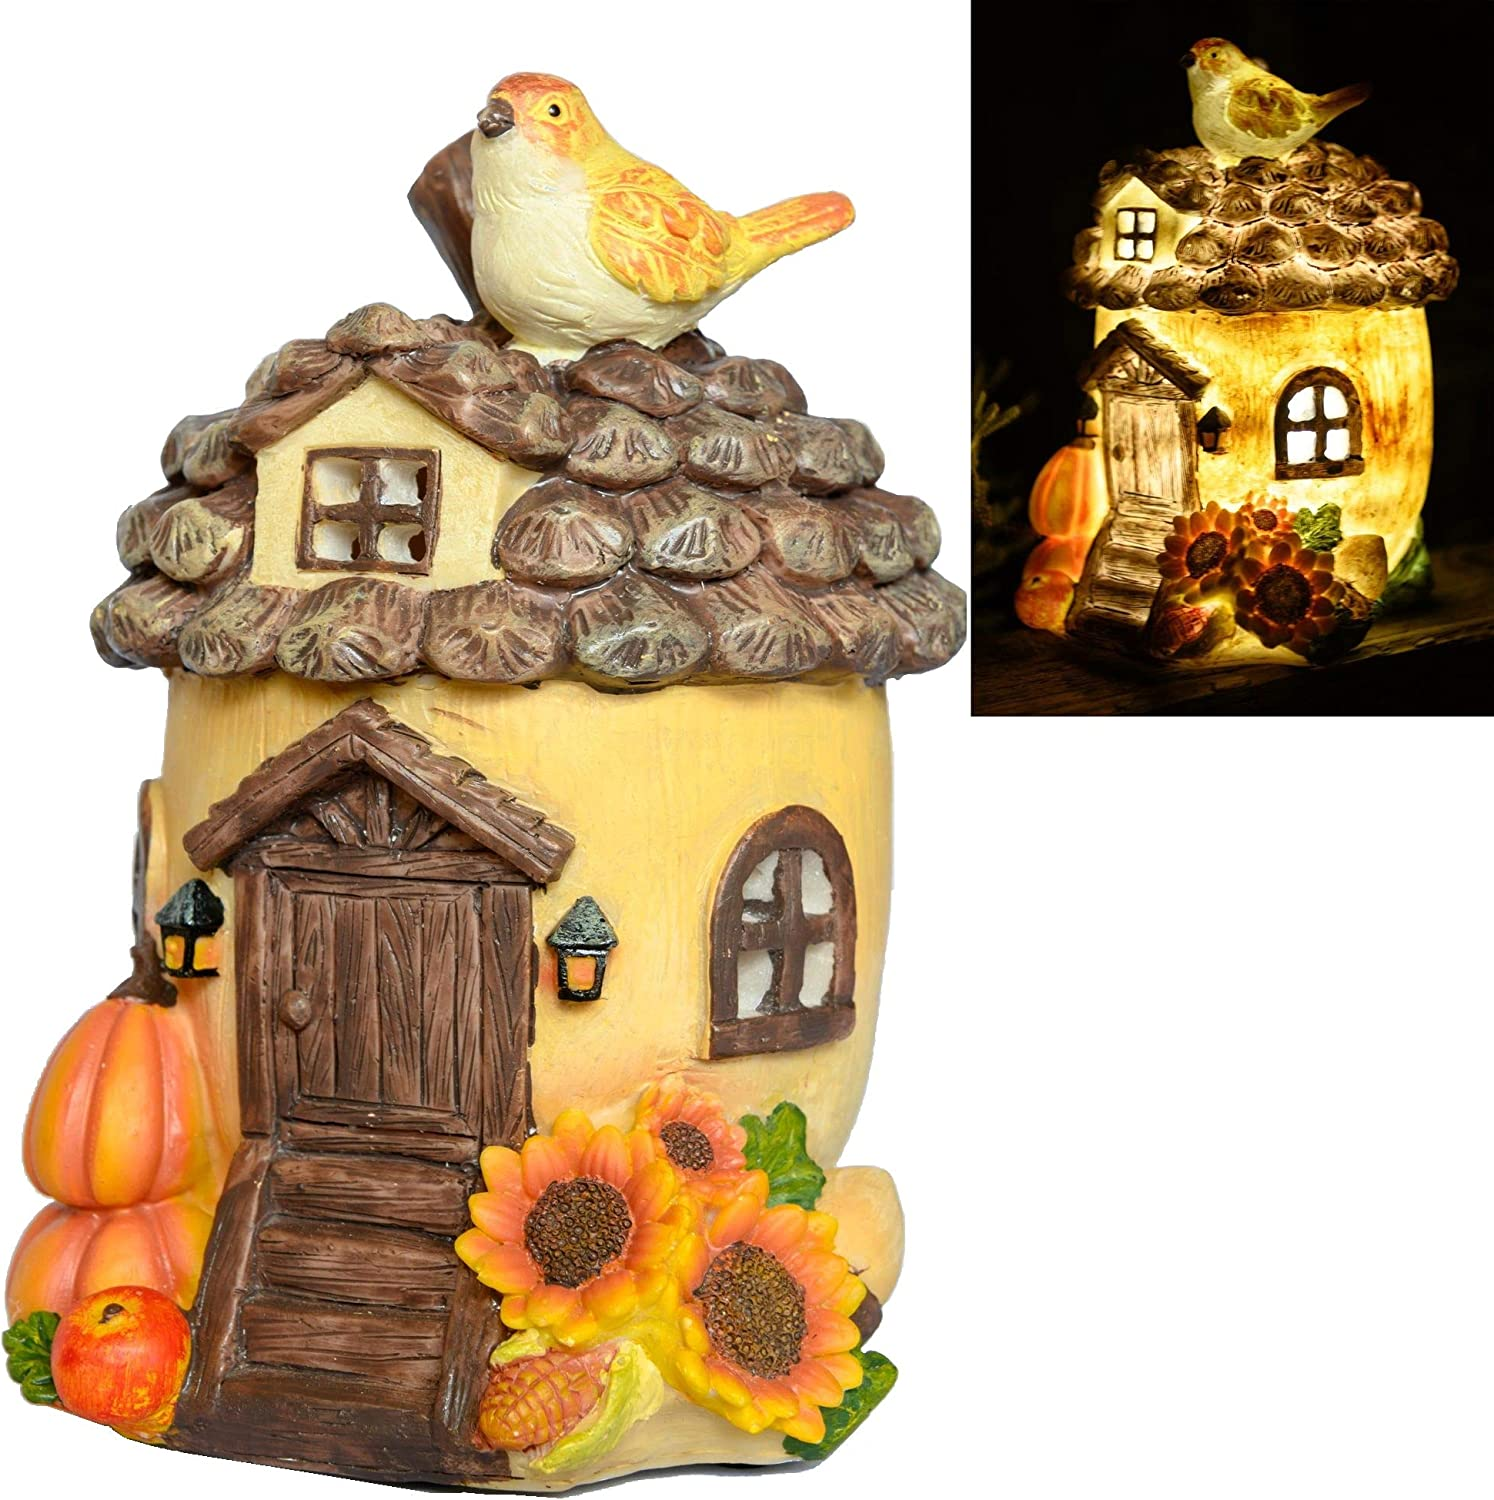 HV Hall View Products Large Solar Fairy House, Acorn Pumpkin and Sunflower Hand Painted with Solar Powered Led Illumination